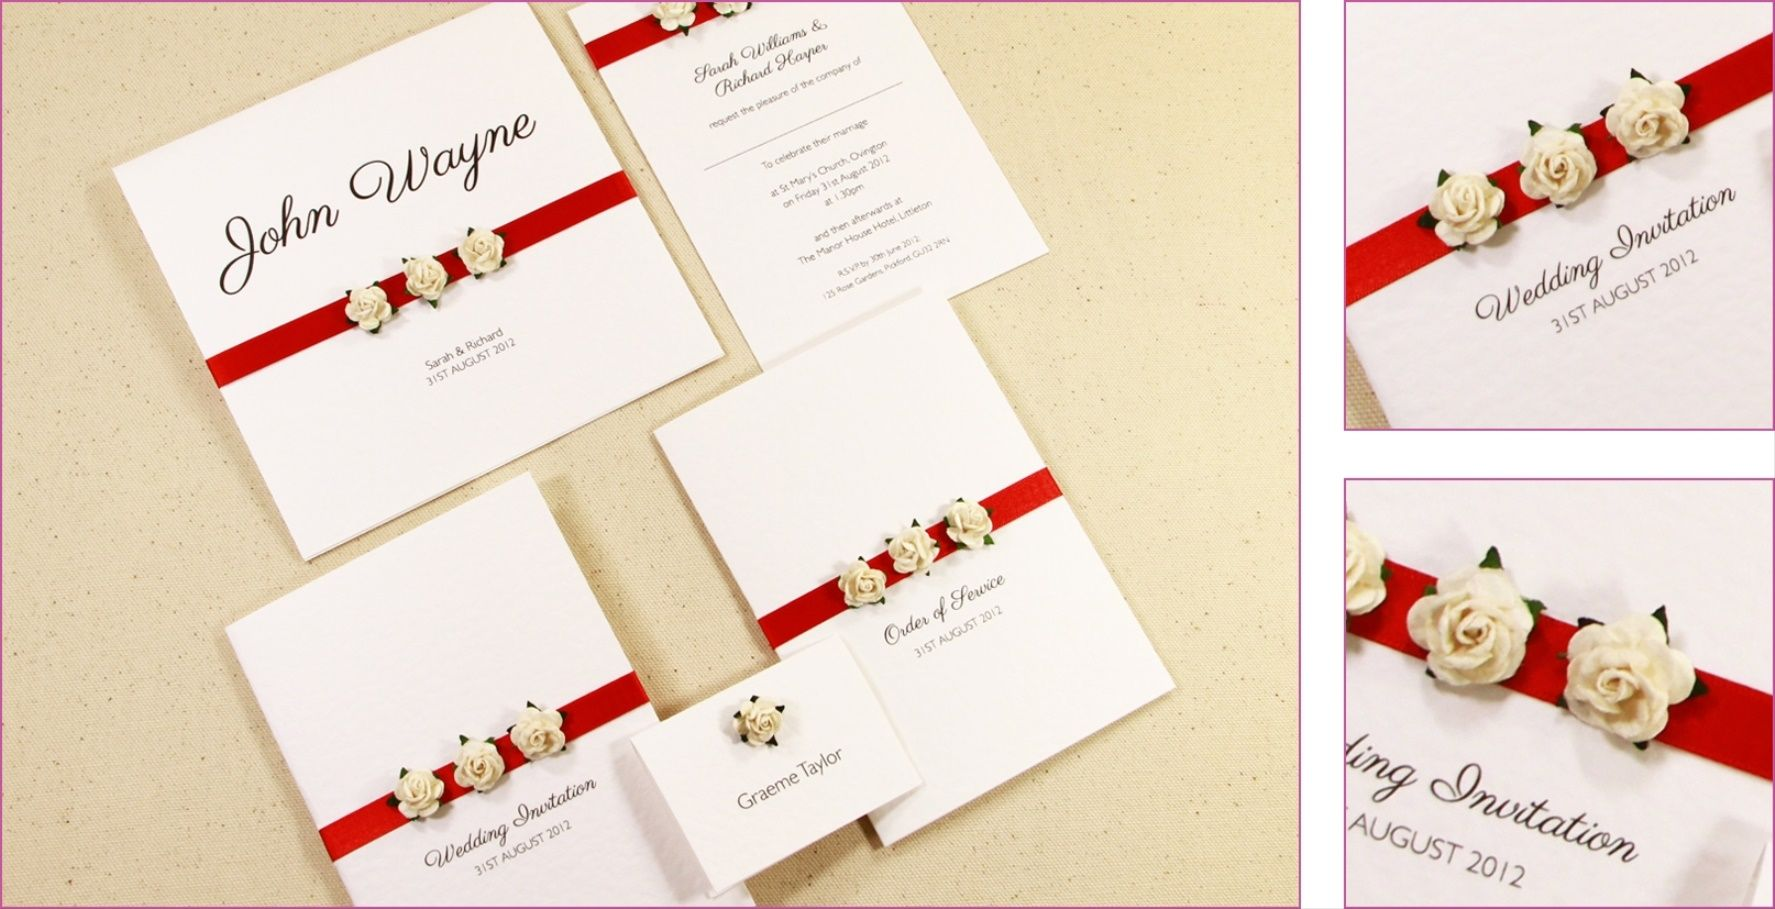 17 best images about handmade wedding invitation cards 2015 2016 on pinterest wedding 2015 homemade birthday invitations and stationery